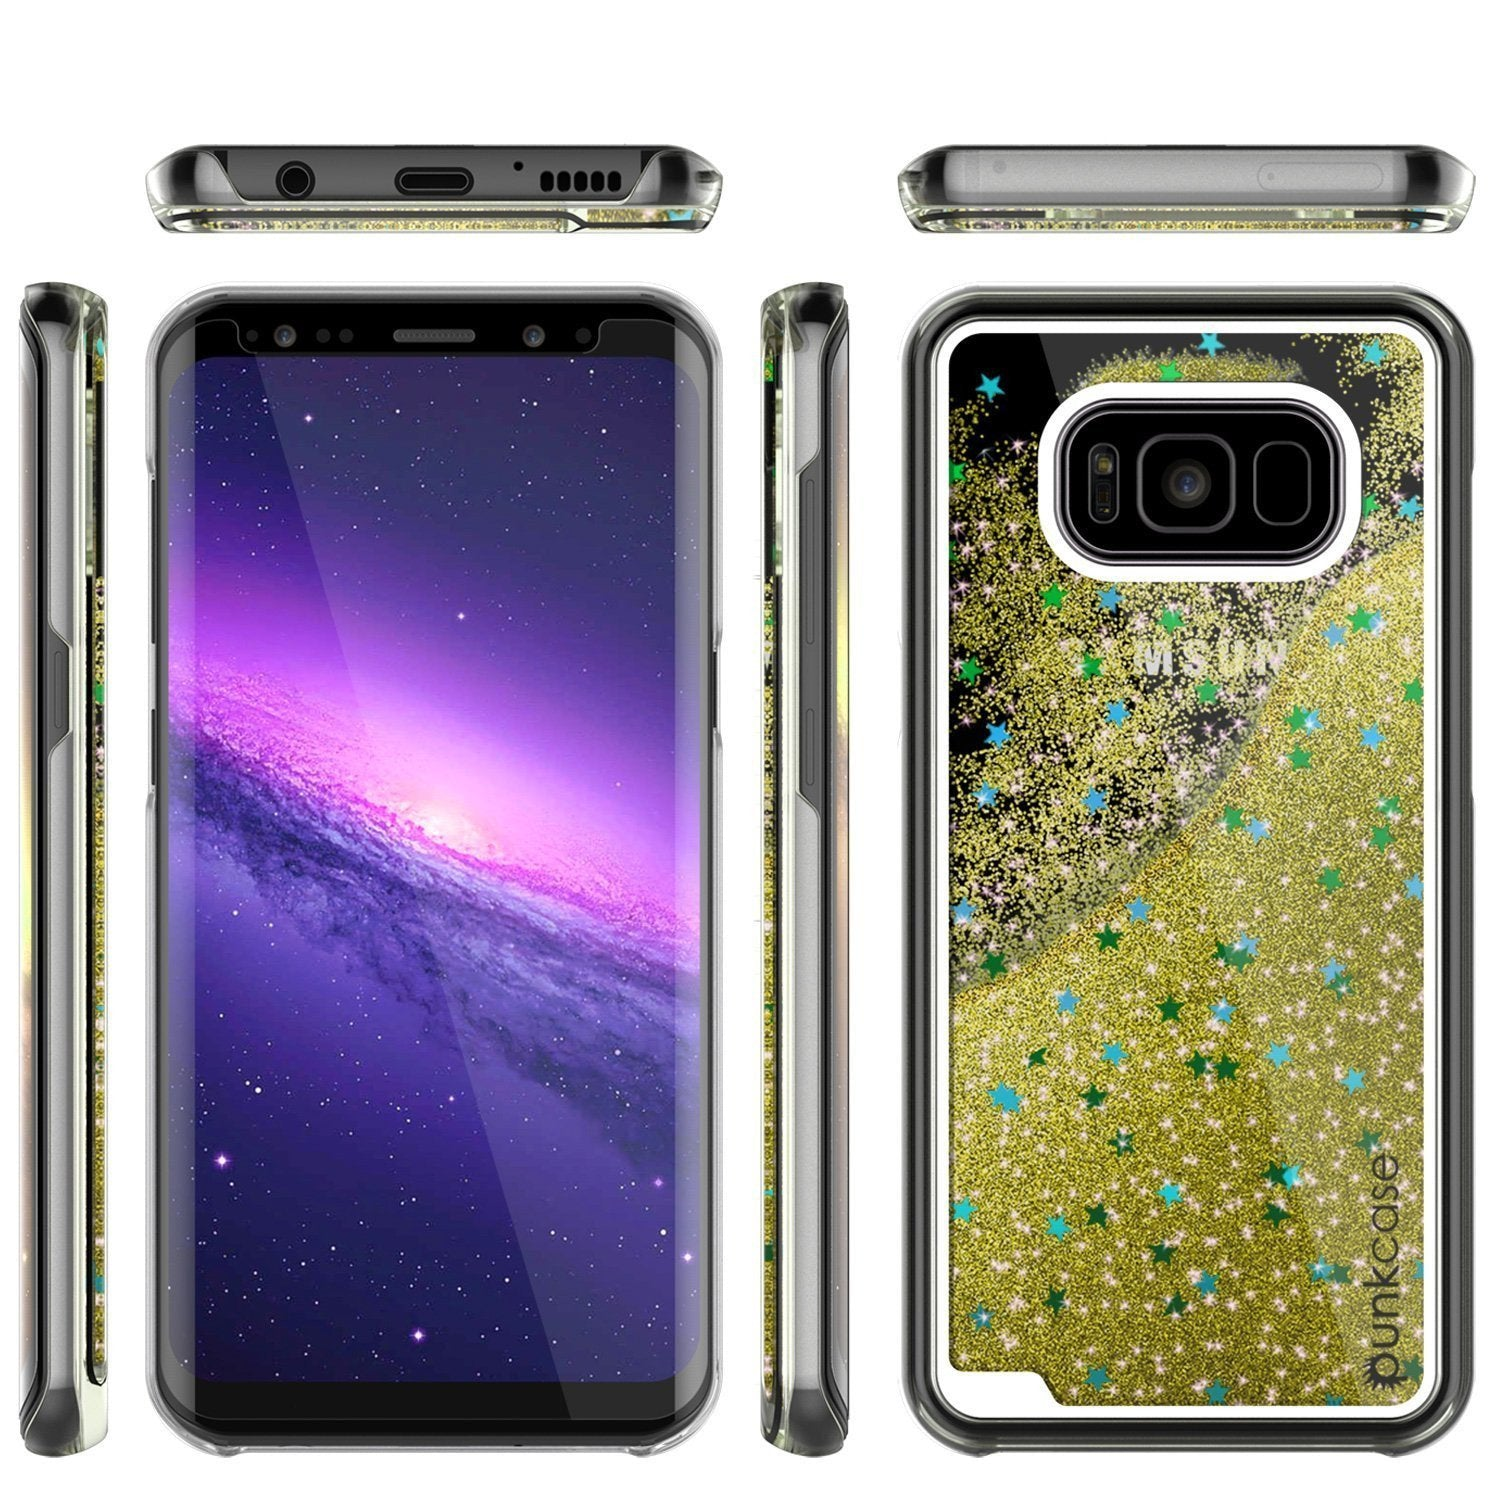 Galaxy S8 Case, Punkcase Liquid Gold Series Protective Glitter Cover